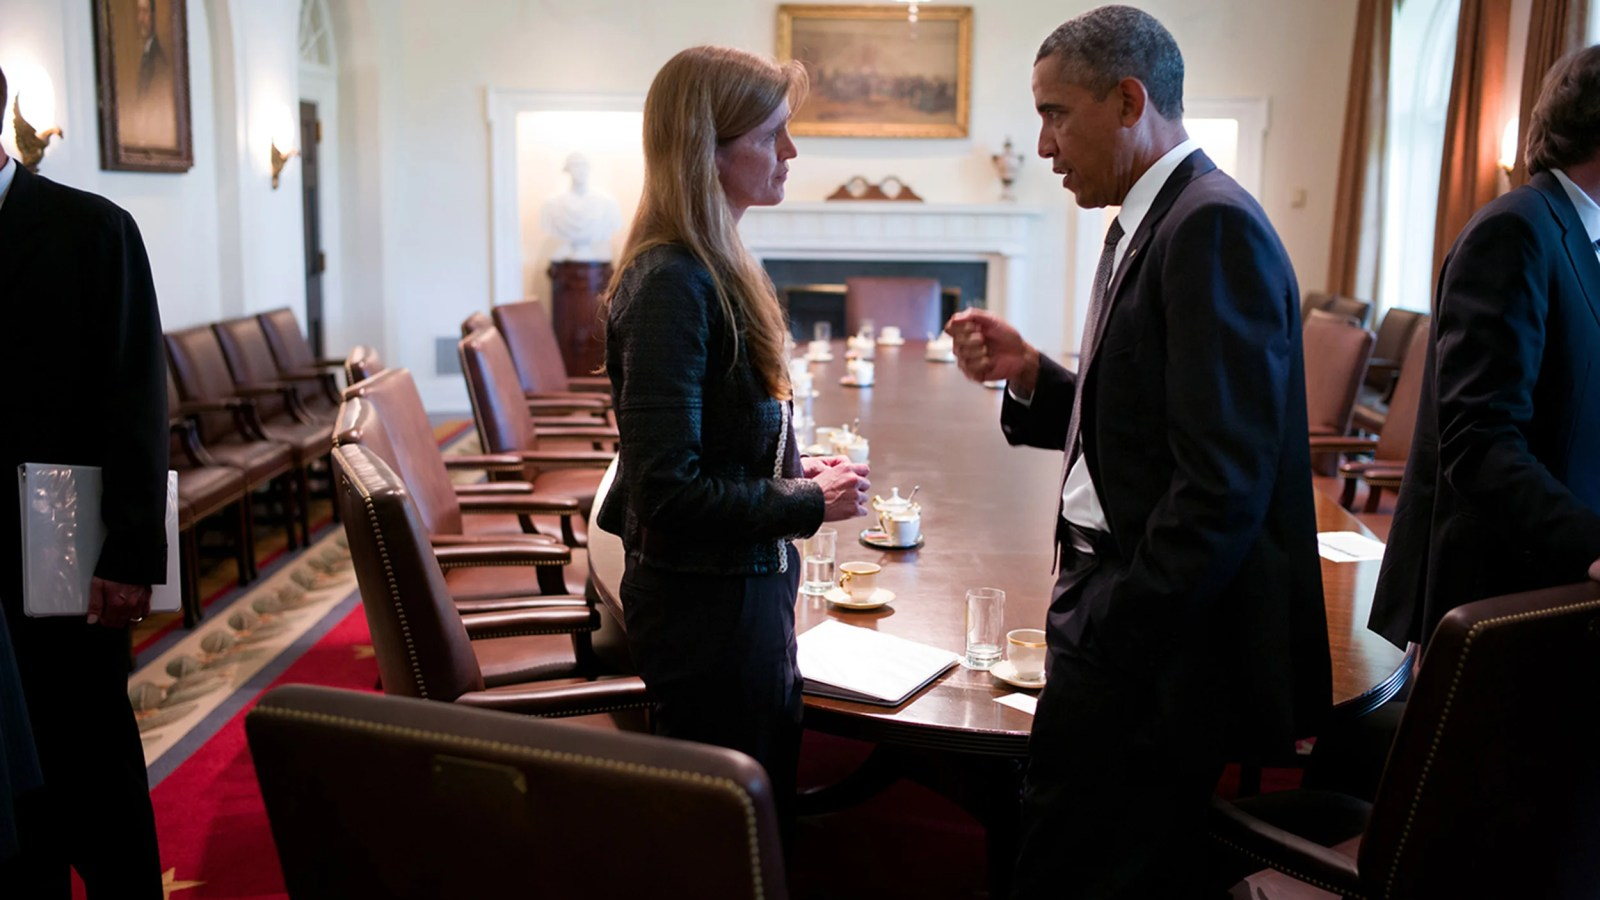 President Obama talks with Ambassdor Power following a Cabinet meeting in the Cabinet Room of the White House, Sept. 12, 2013.  Official White House Photo by Pete Souza